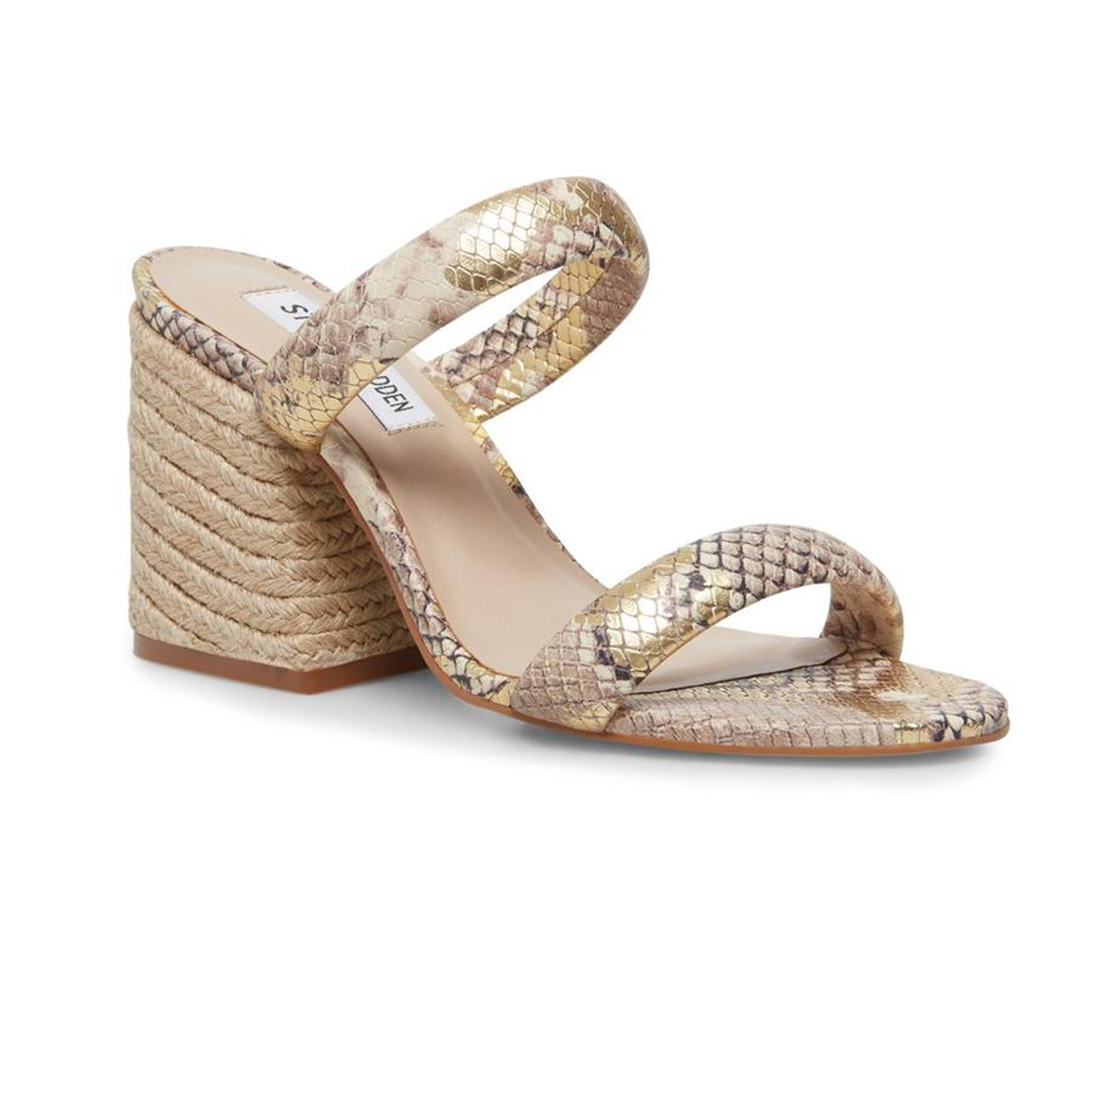 Steve Madden Marcella In Gold Snake 64583